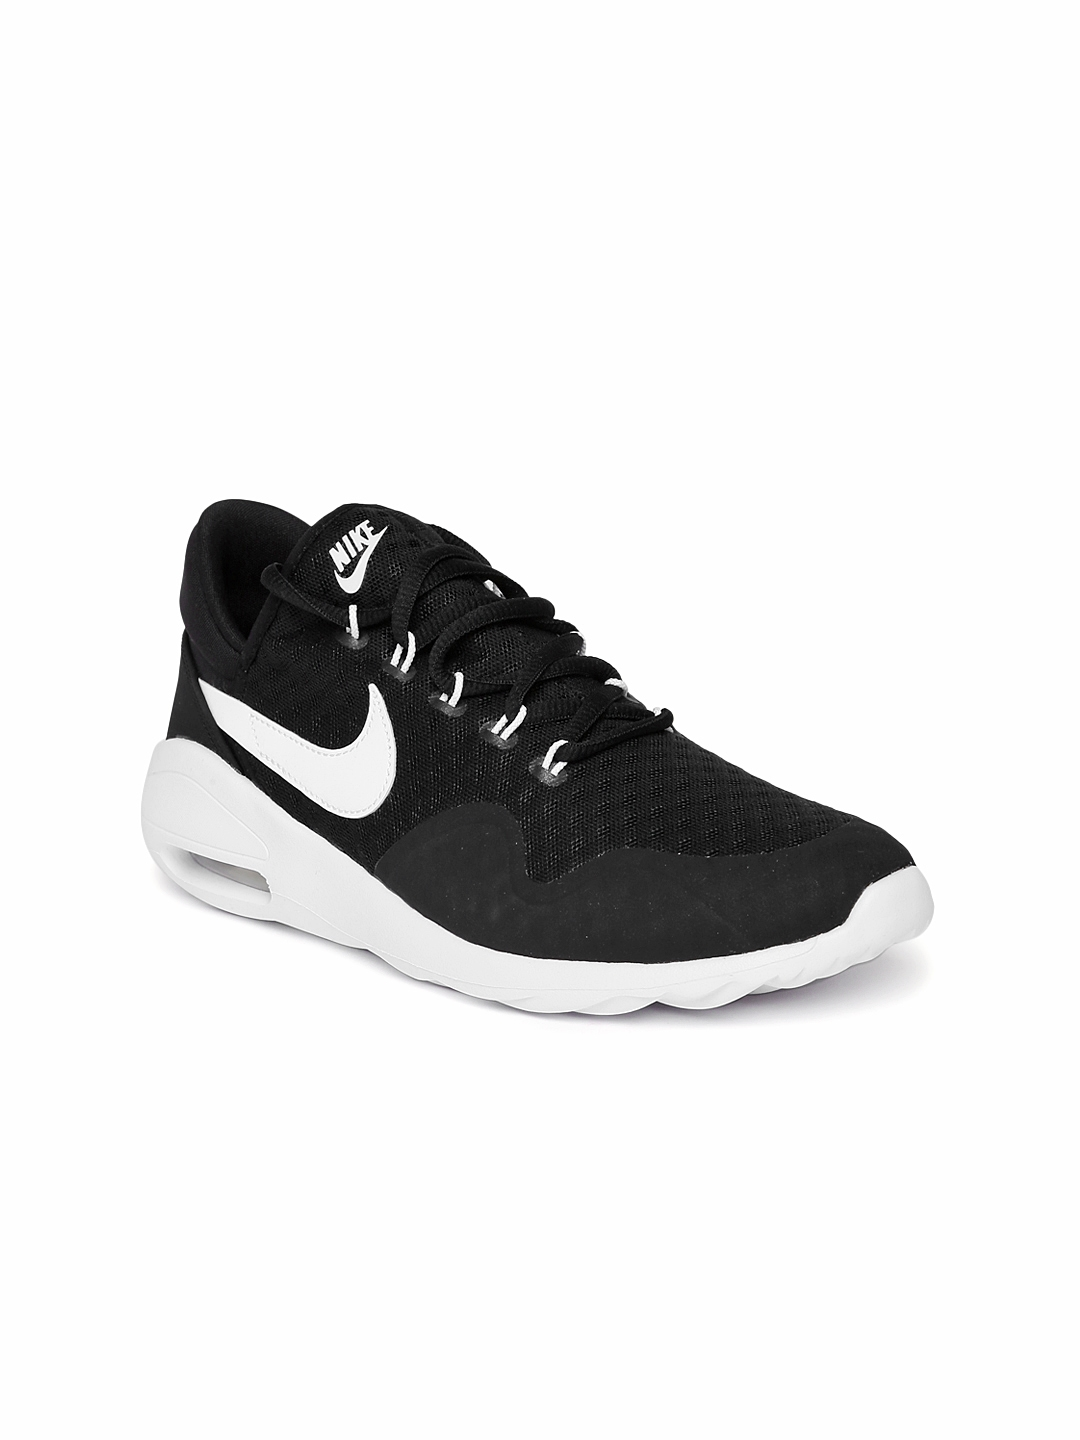 f02b3c1a7a Buy Nike Women Black Air Max Sasha Sneakers - Casual Shoes for Women ...